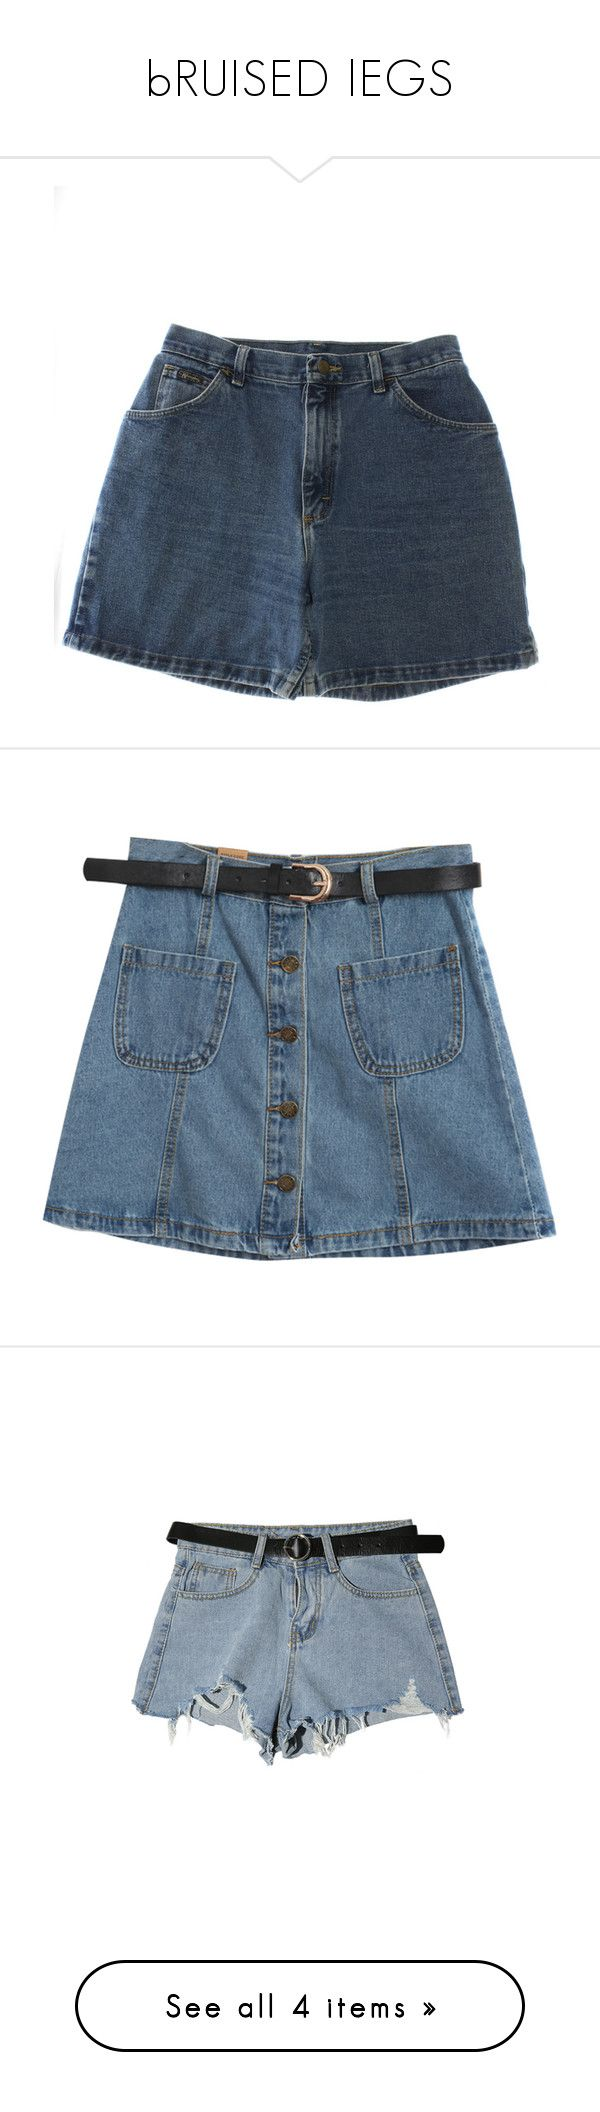 """""""bRUISED lEGS"""" by pinkslug ❤ liked on Polyvore featuring shorts, bottoms, skirts, denim shorts, short jean shorts, vintage jean shorts, gold shorts, button shorts, wrangler shorts and saias"""